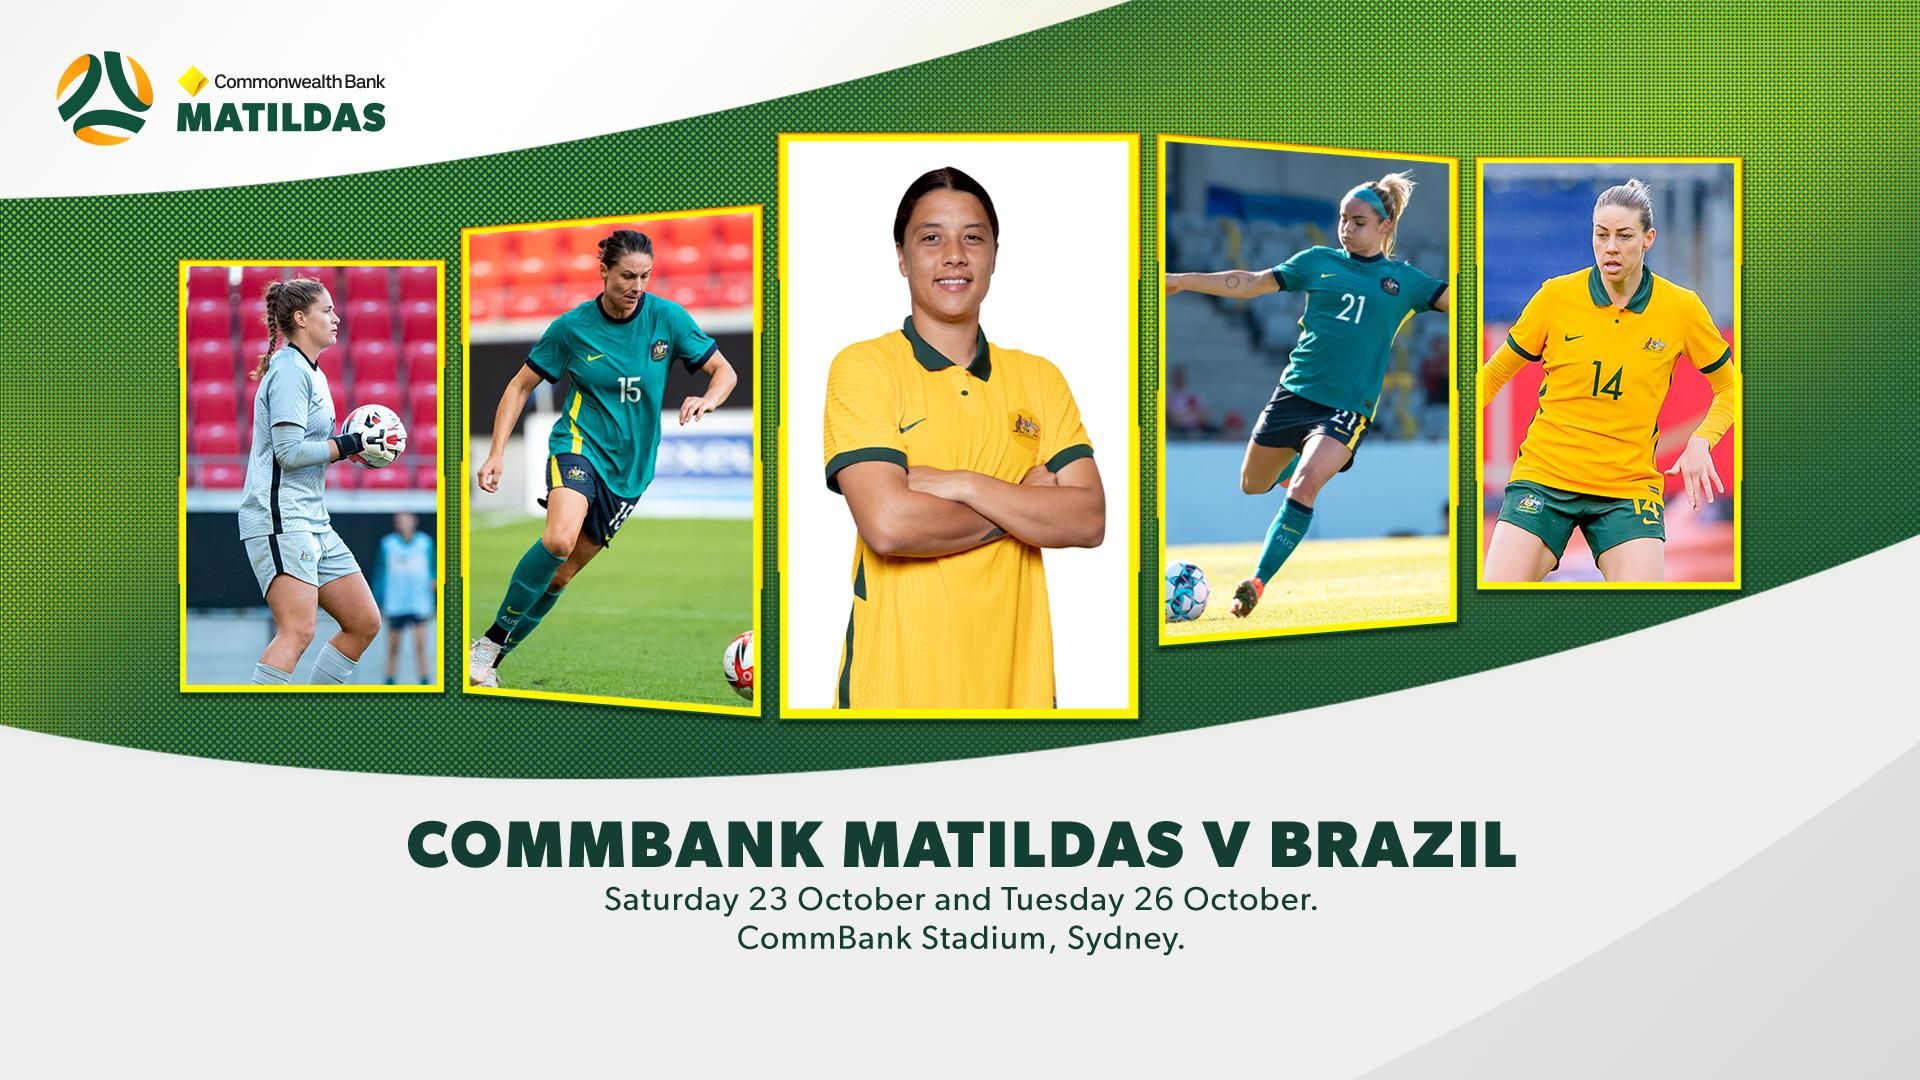 The Commonwealth Bank Matildas to headline return of major events to NSW in October